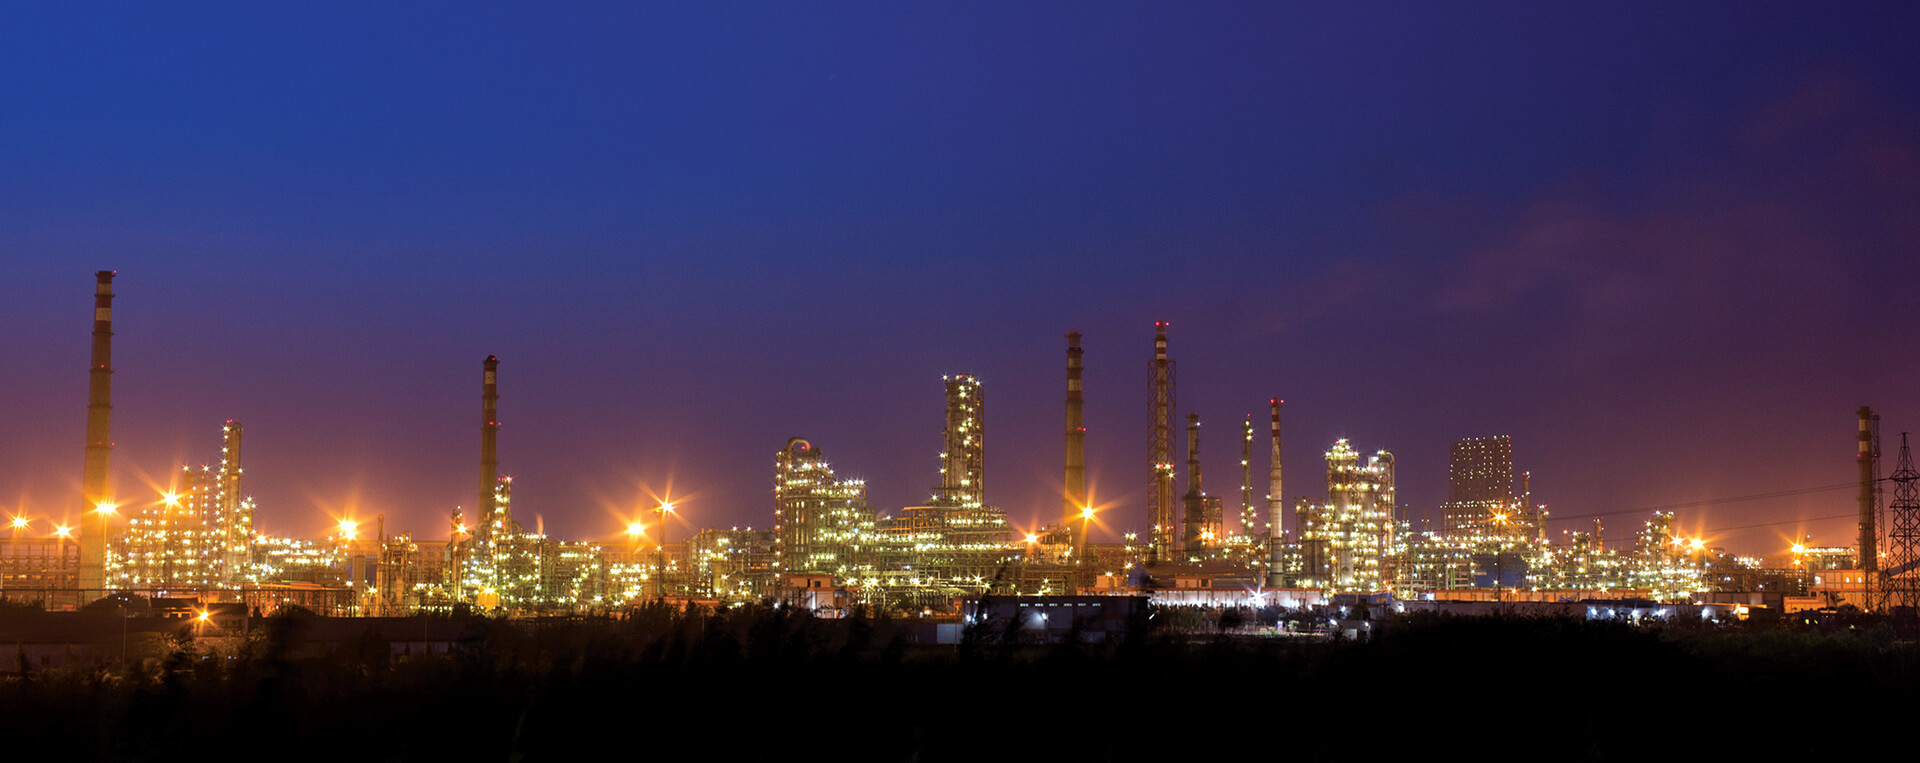 Nayara Energy | Top Petroleum Company |Second largest Oil Refinery